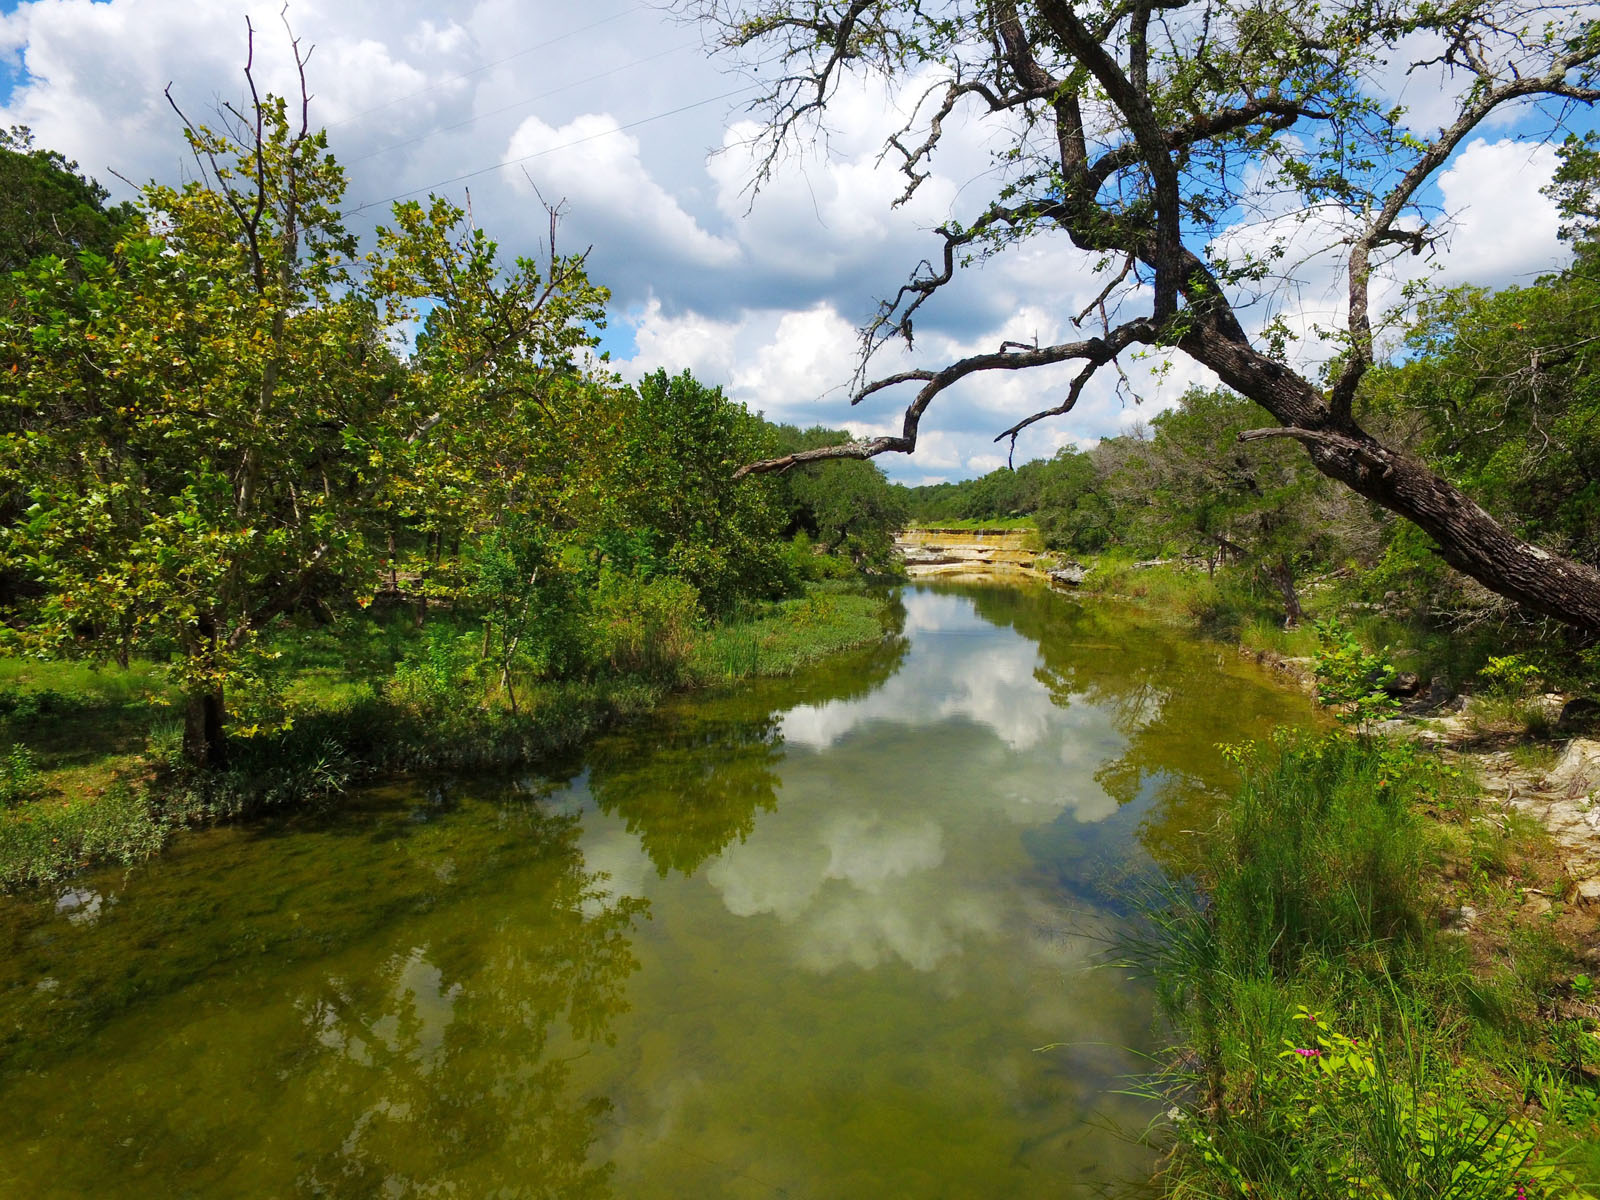 Additional photo for property listing at Serenity, Adventure and Opportunity 3500 FM 3237 Wimberley, Texas 78676 Estados Unidos